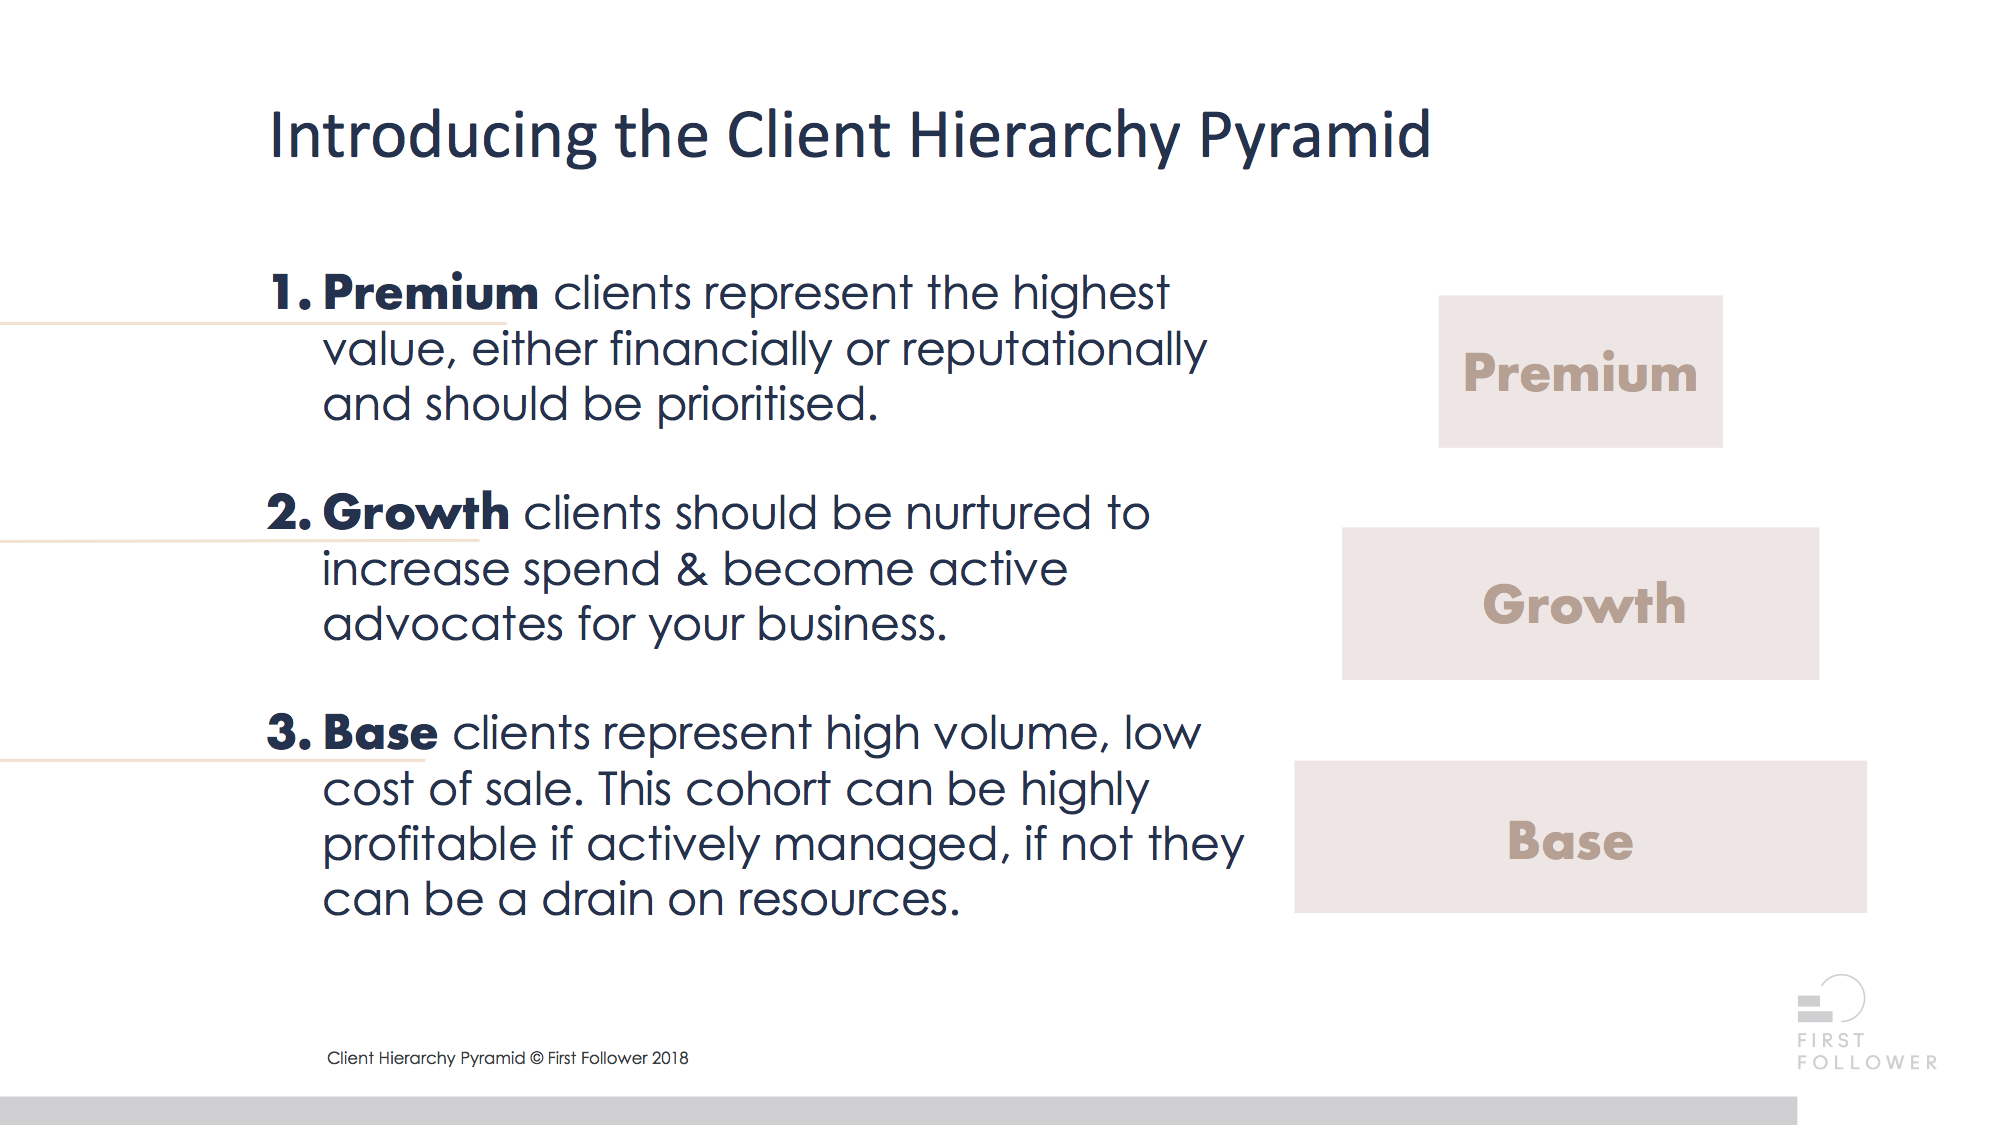 The Client Hierarchy model